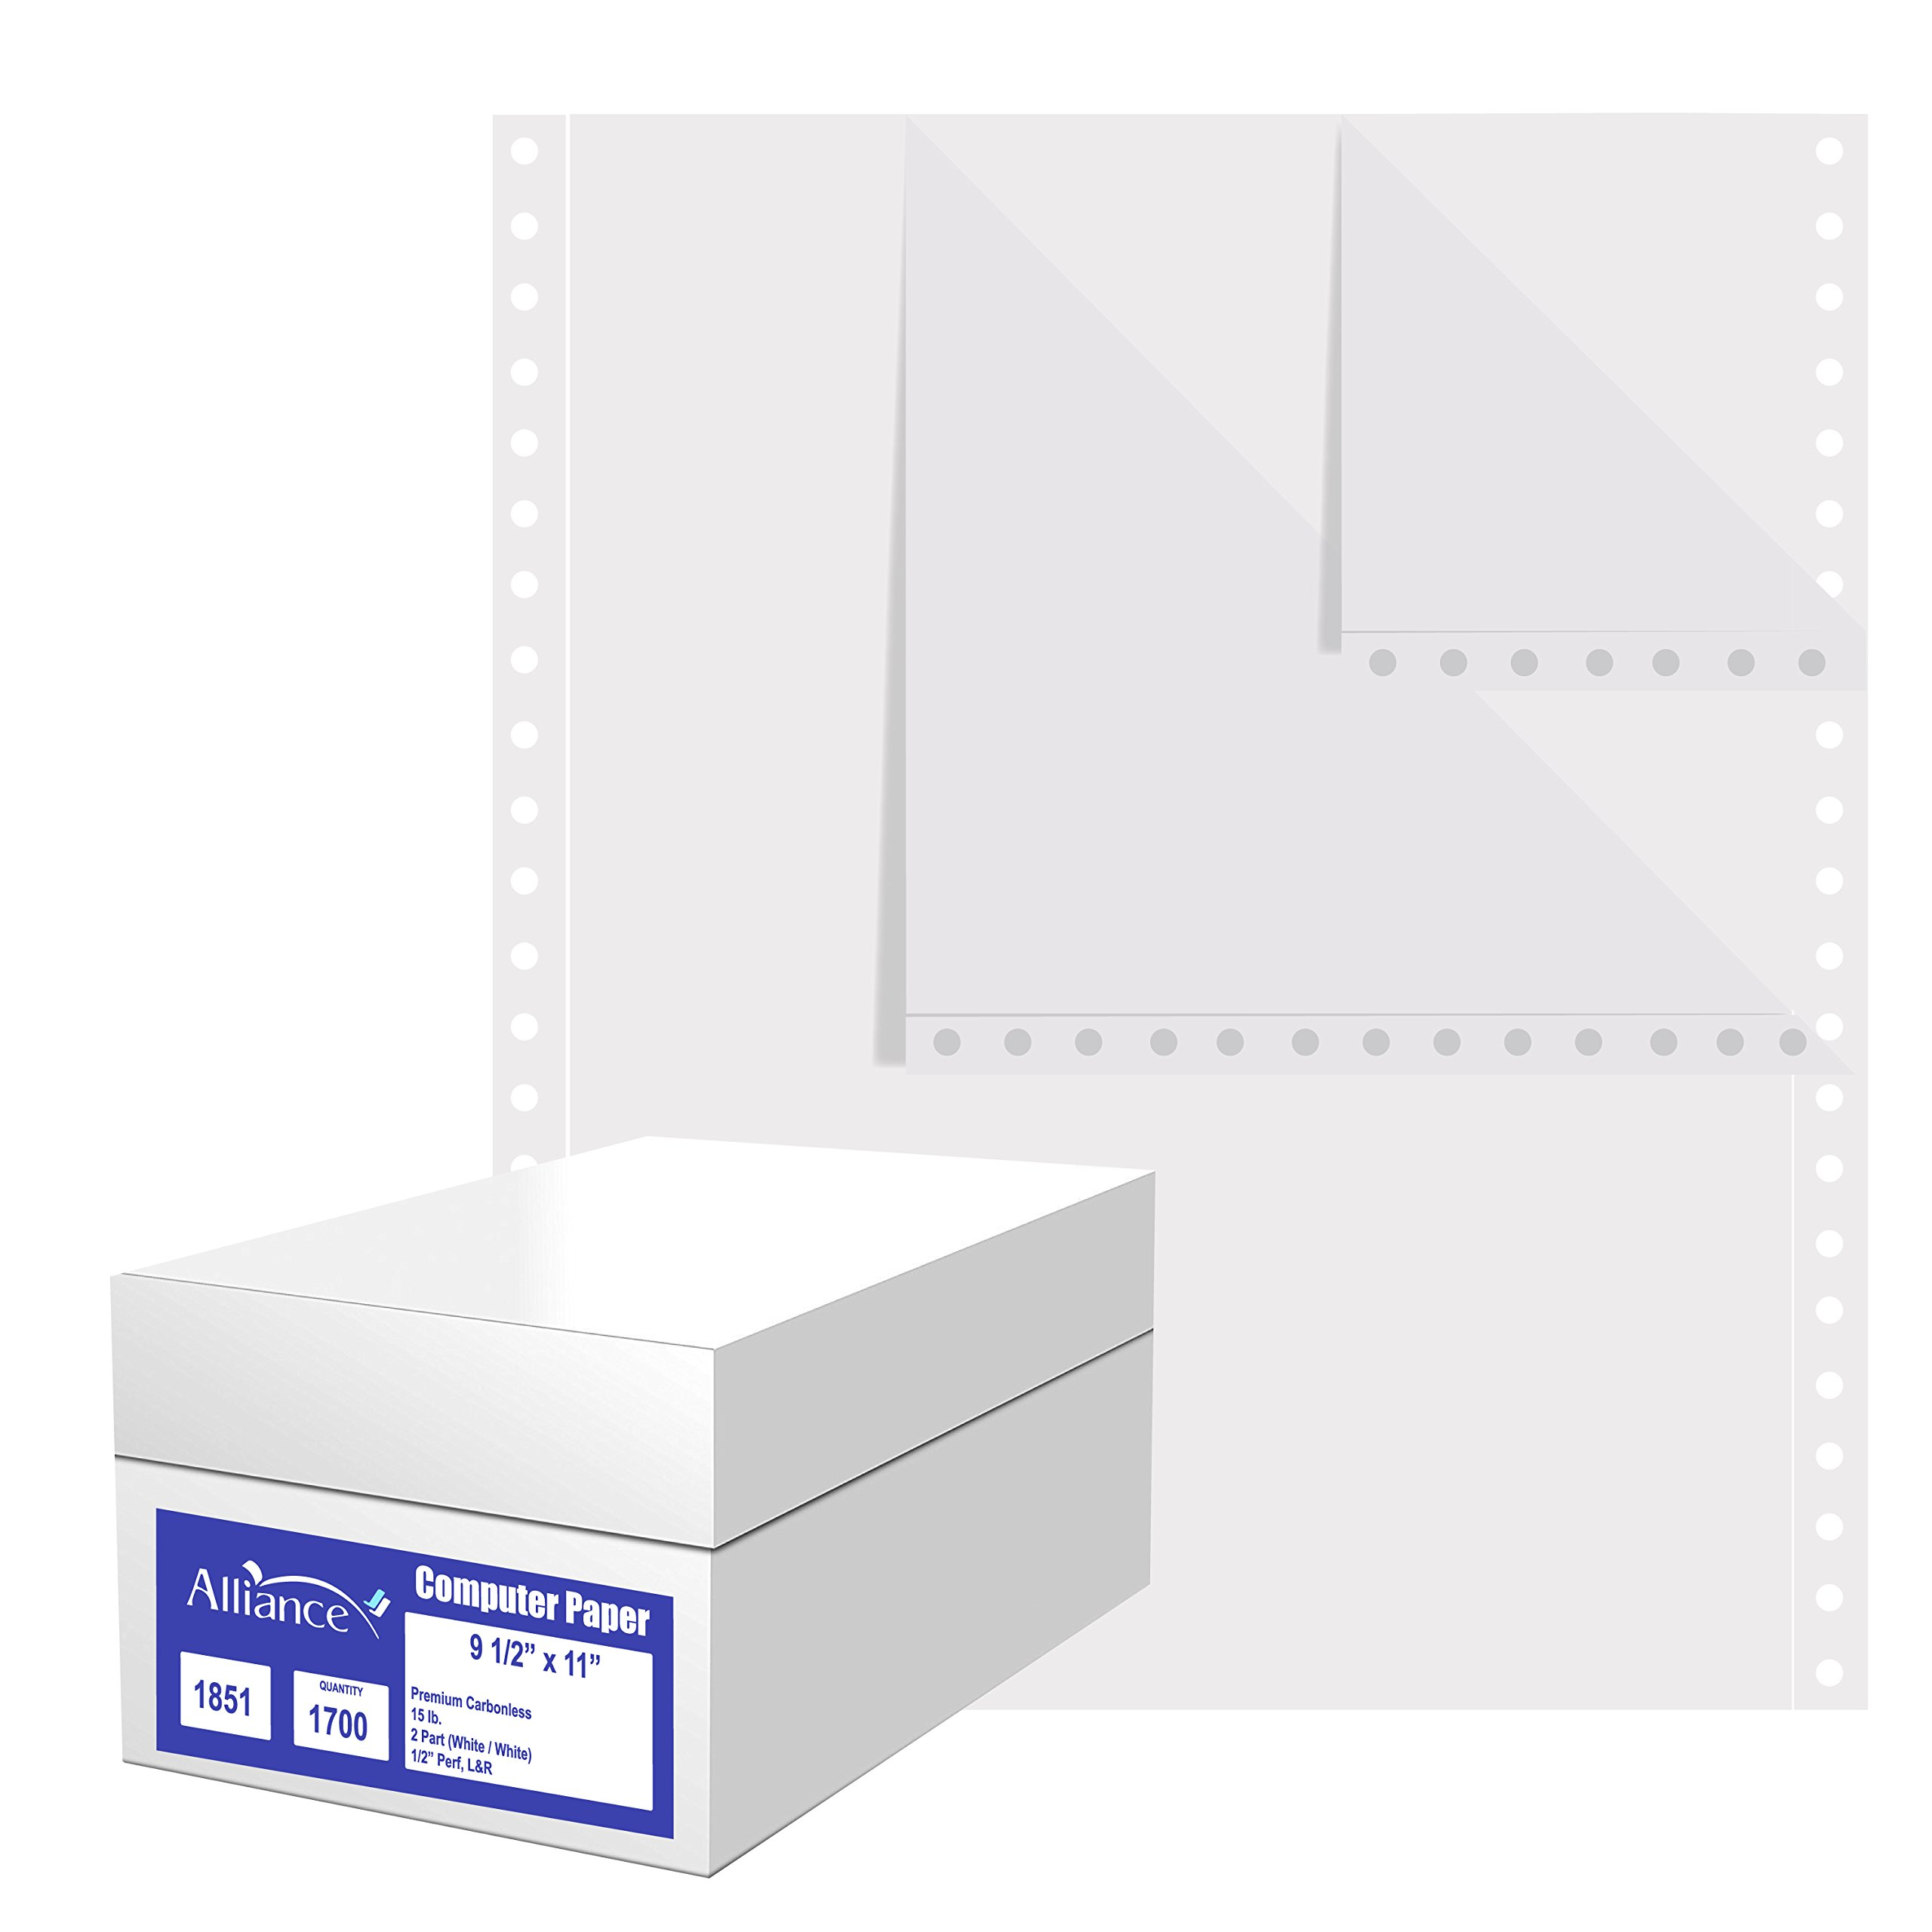 Alliance Premium Carbonless Computer Paper, 9.5 x 11, Blank Left and Right Perforated, 15 lb, 2-Part White/White (1,700 Sheets) - Made In The USA